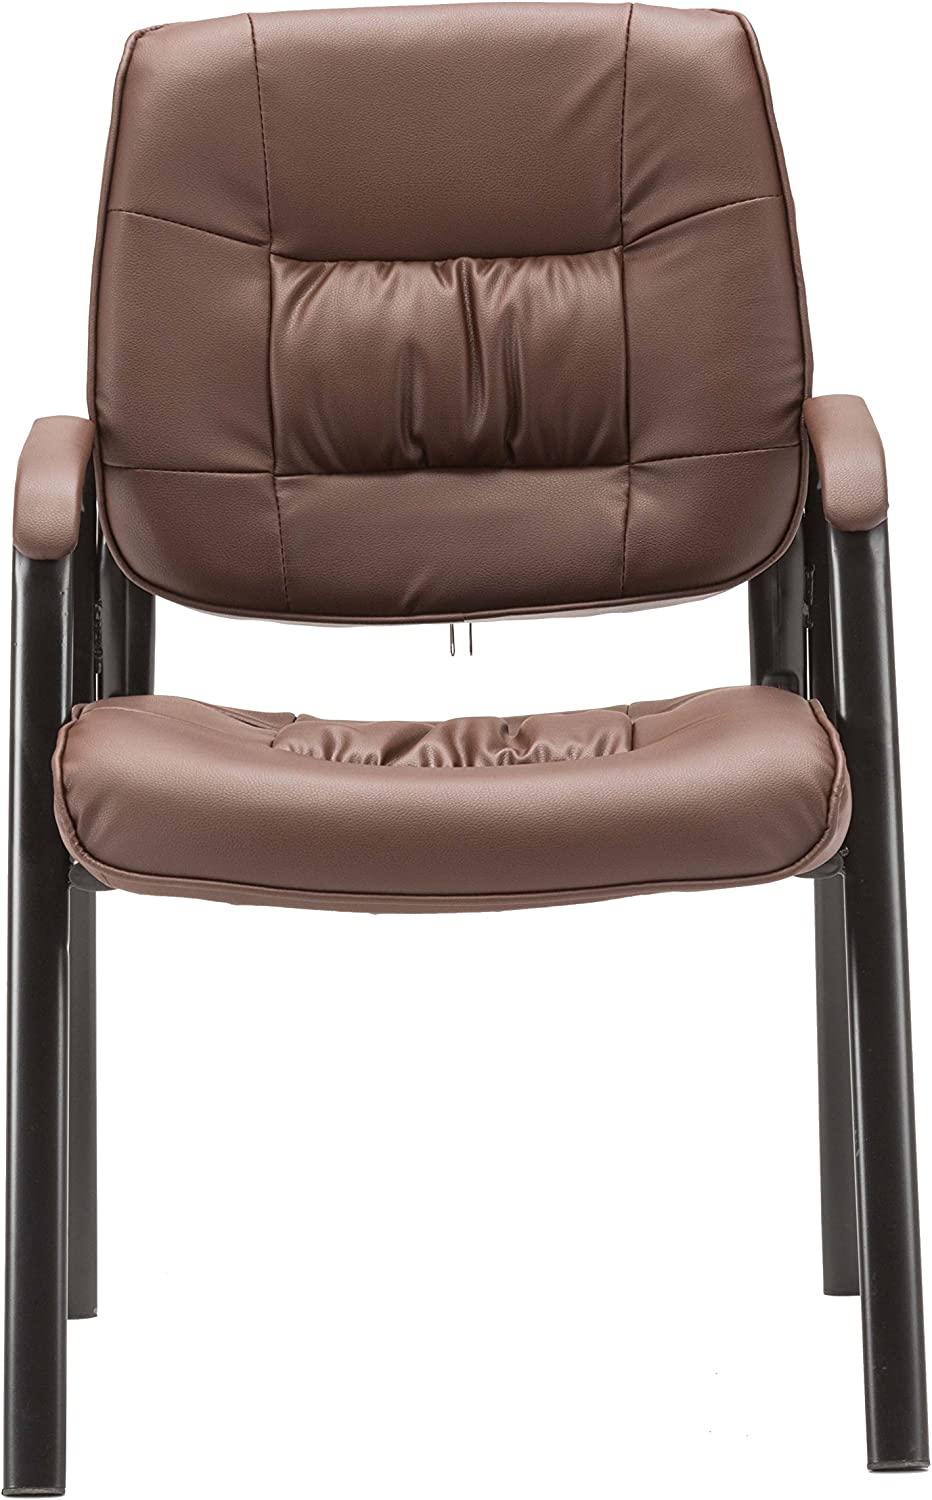 BTEXPERT Premium Leather Office Executive Chair Waiting Room Guest/Reception Side Conference Chair Brown